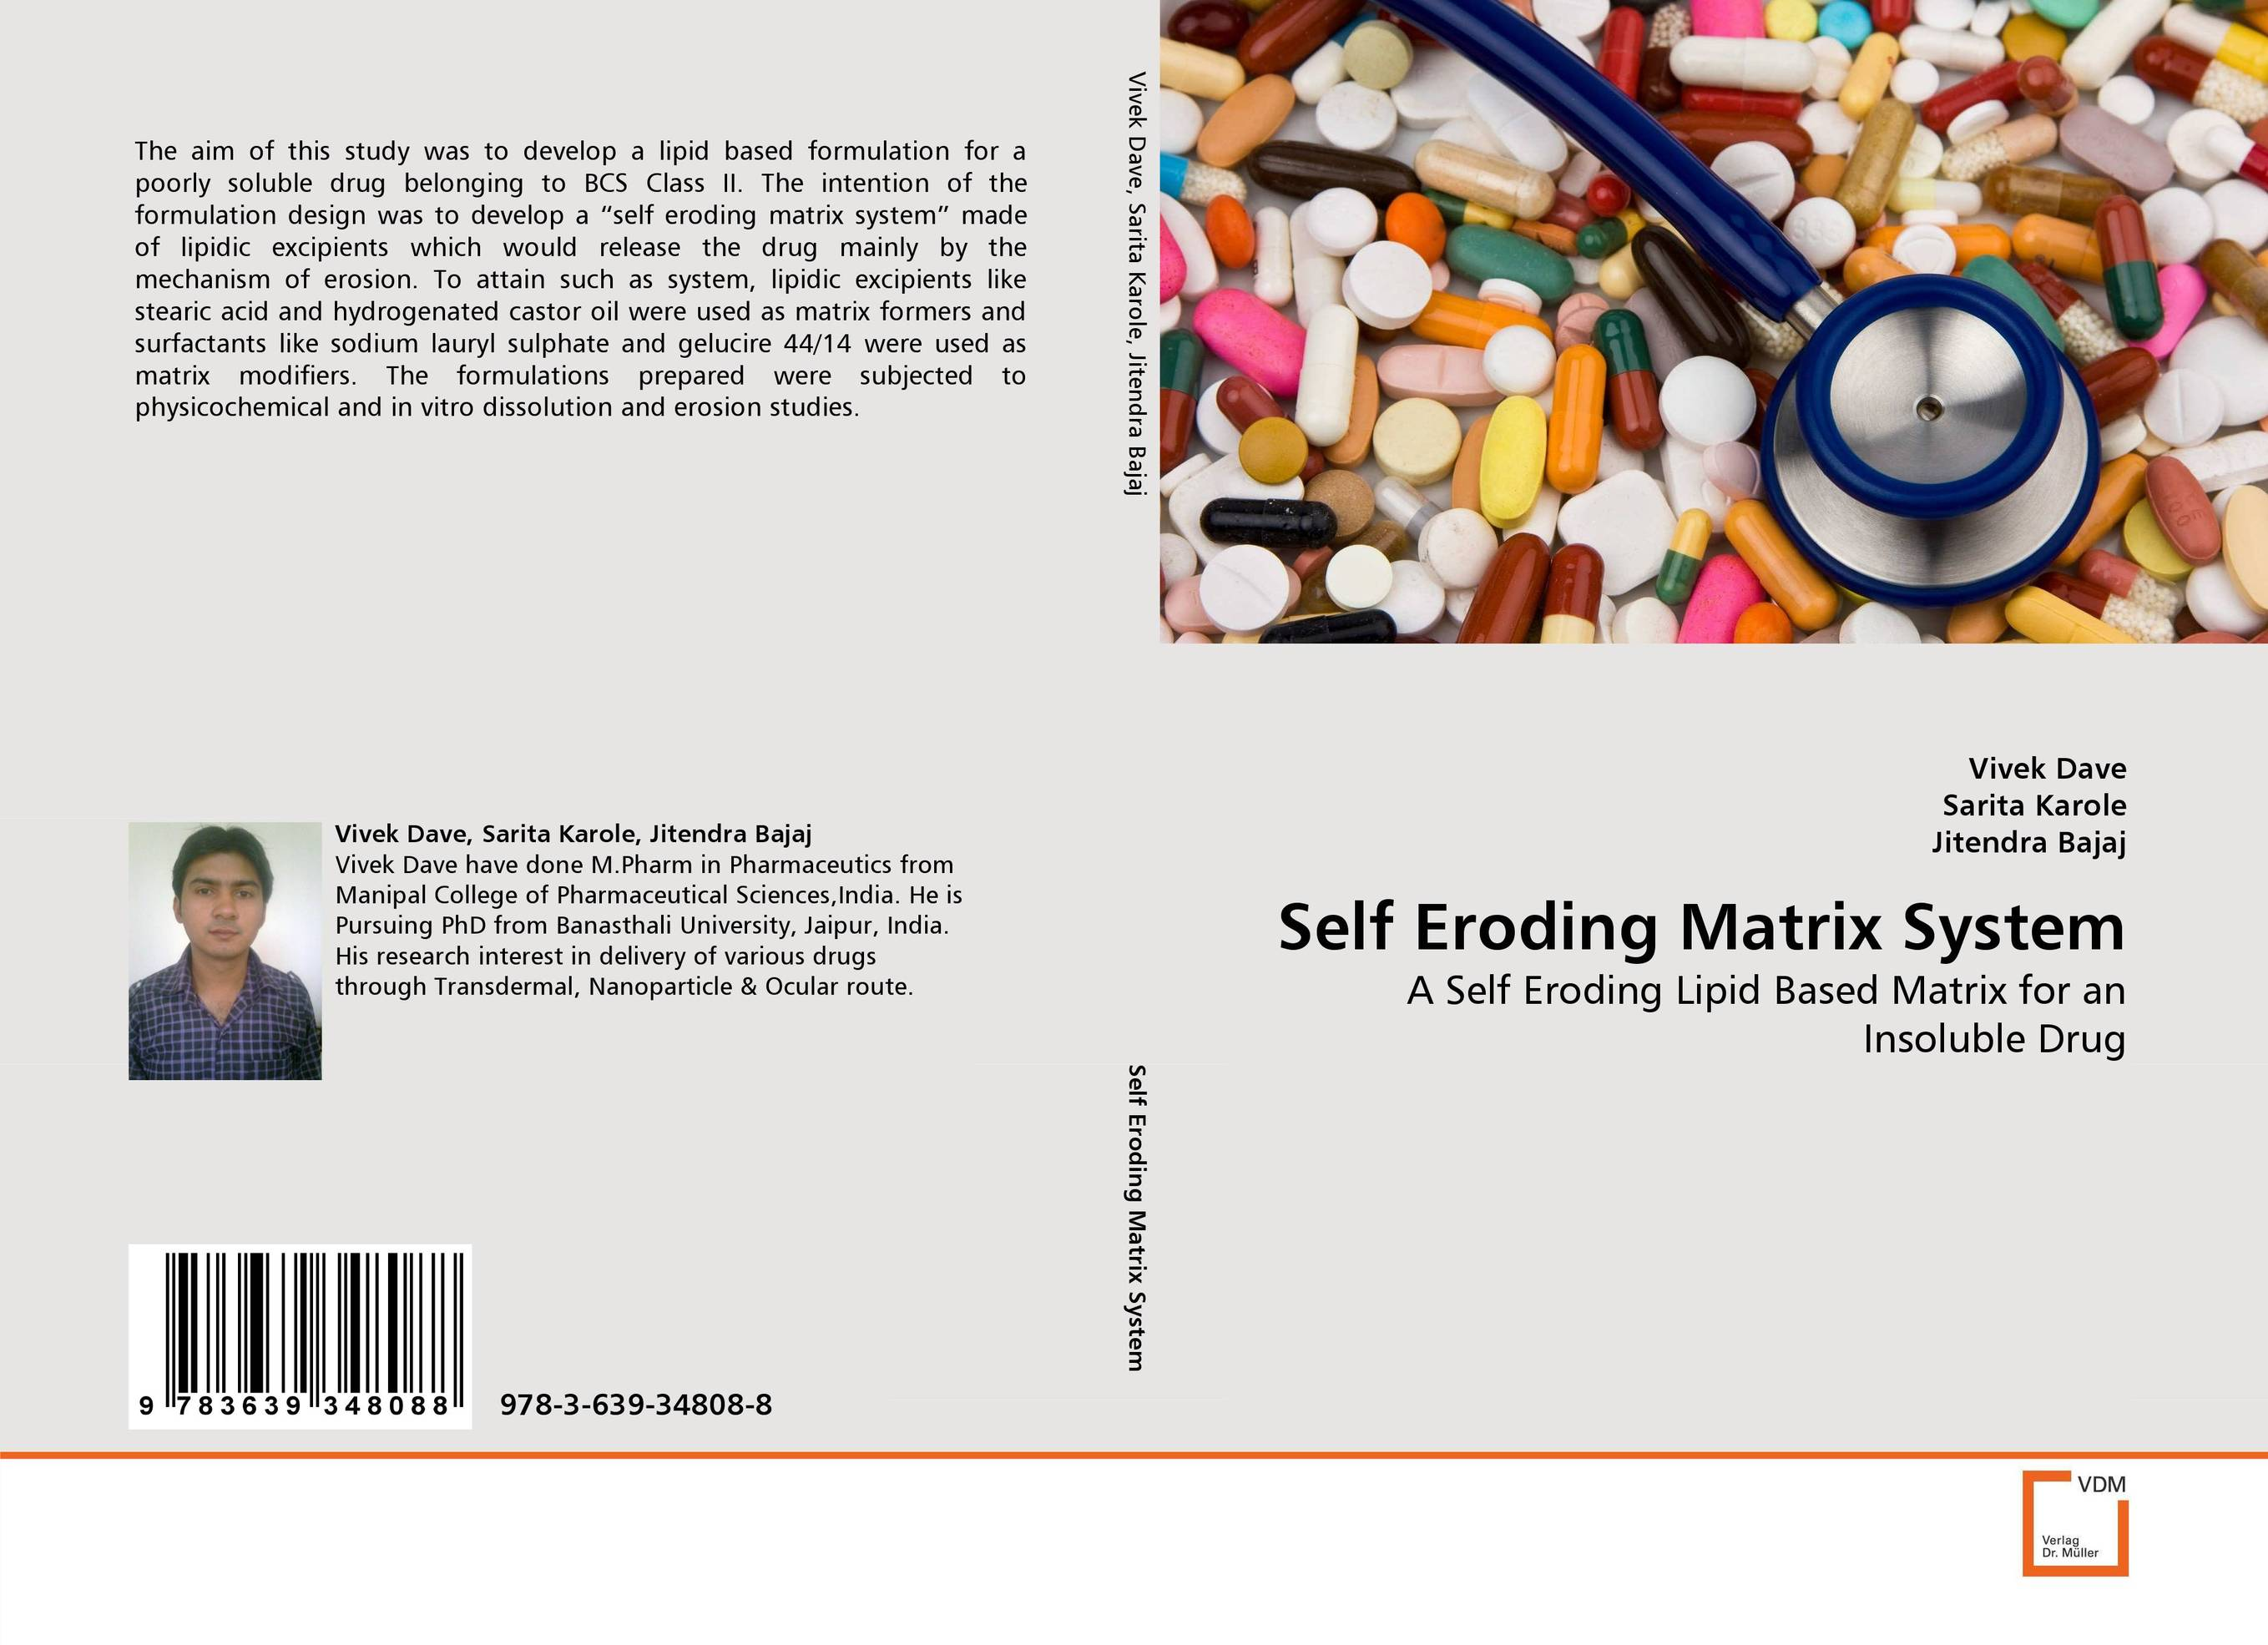 Self Eroding Matrix System excipients used in the design of lipidic and polymeric microspheres